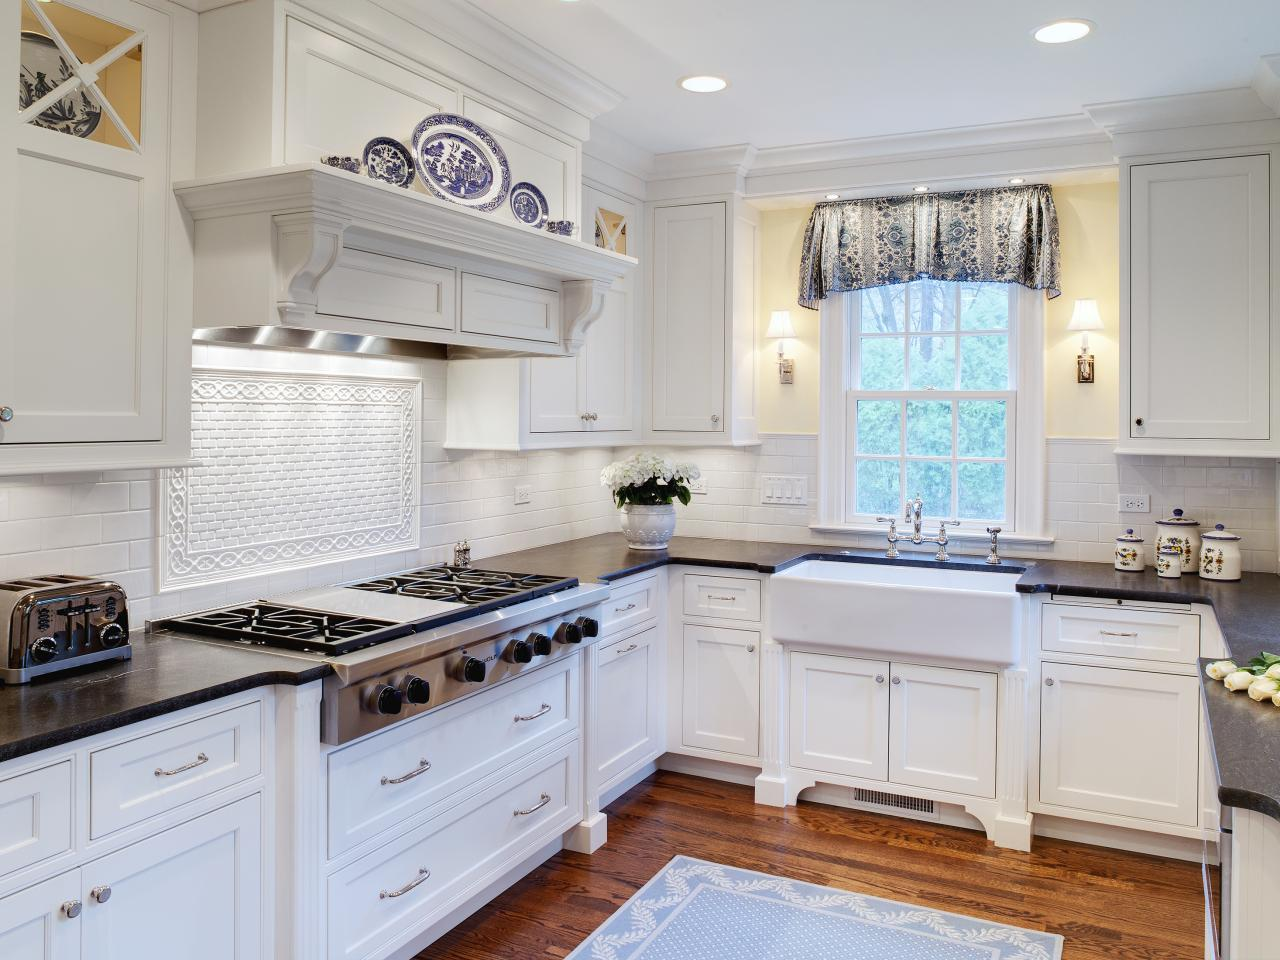 Top 15 Stunning Kitchen Design Ideas And Costs U2013 Home Improvement Advice By  RemodelGurus.com